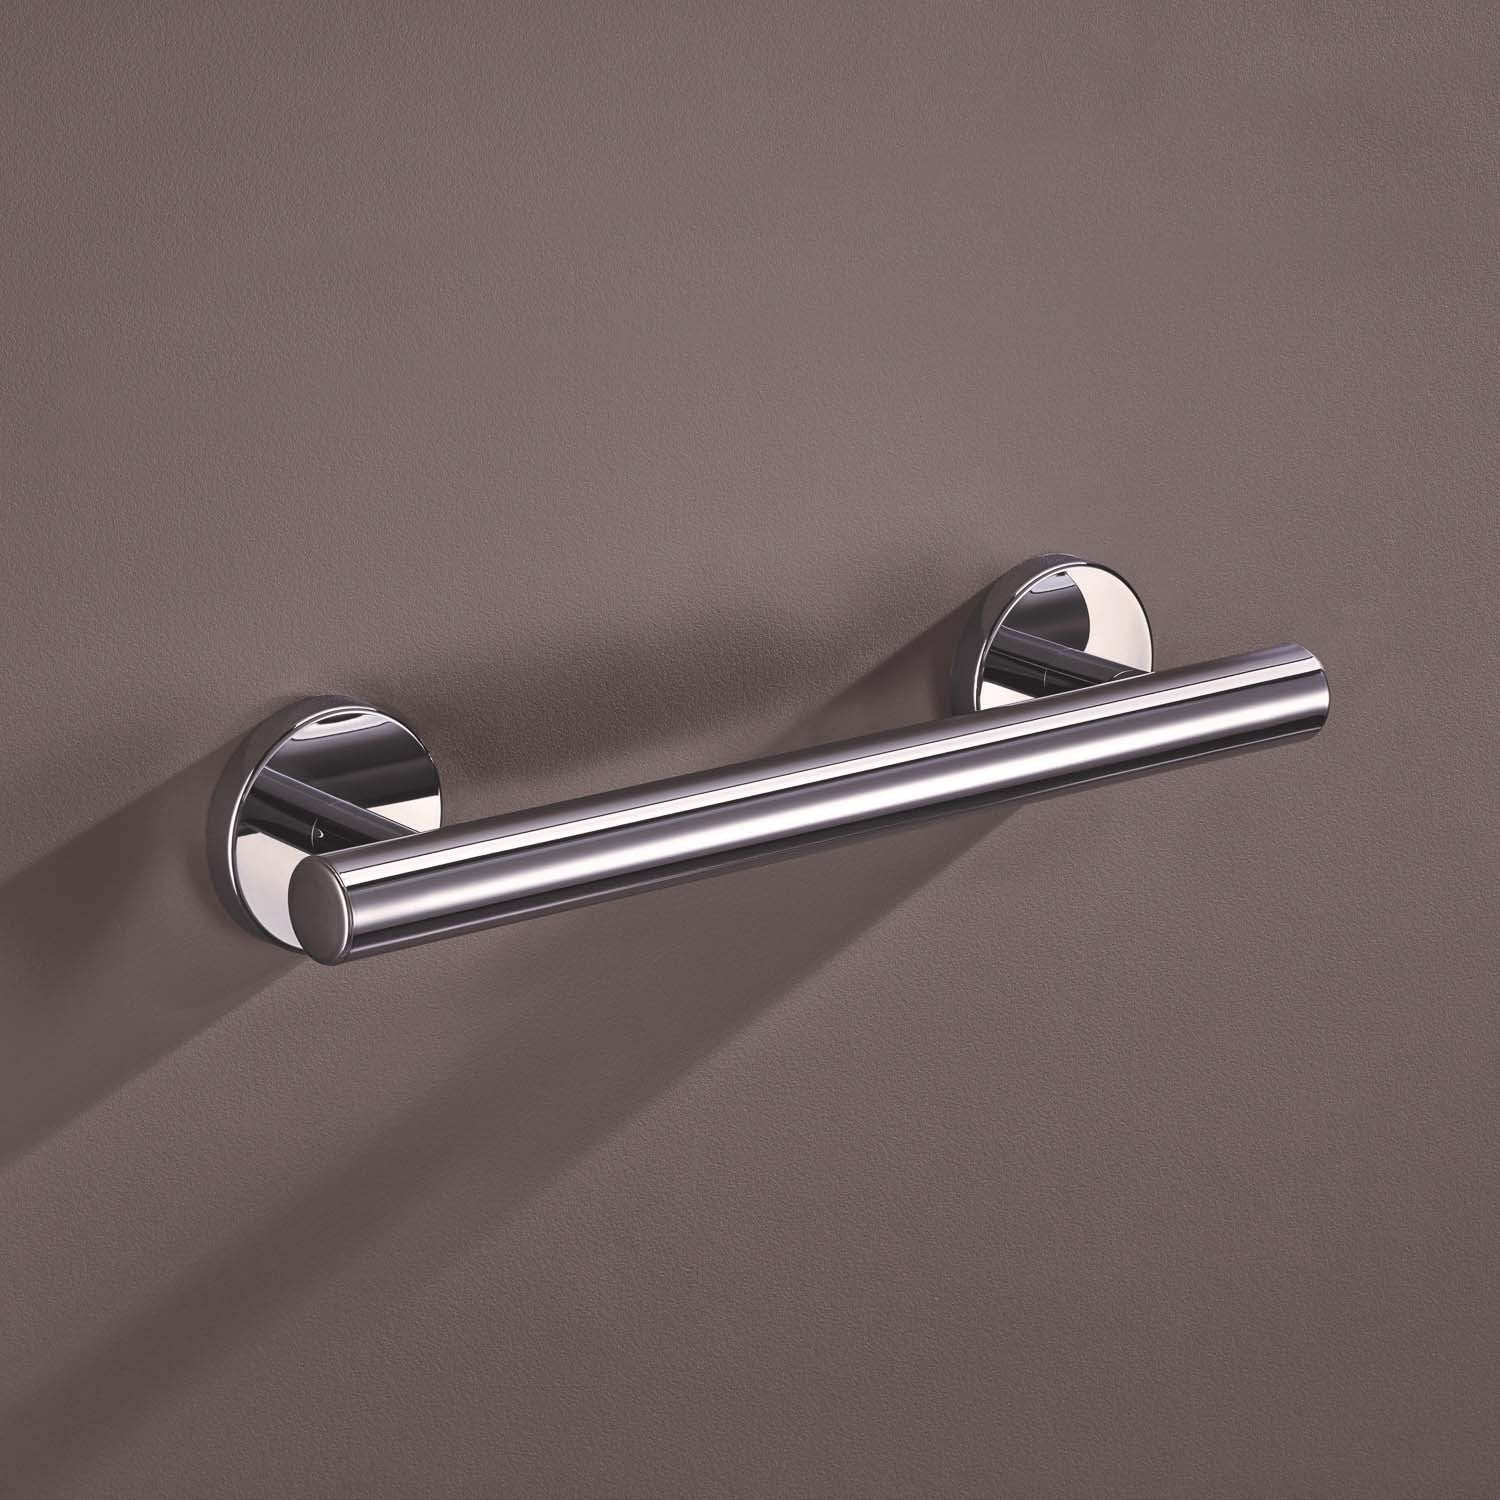 900mm Warm Touch Circula Straight Grab Rail with a chrome look finish lifestyle image